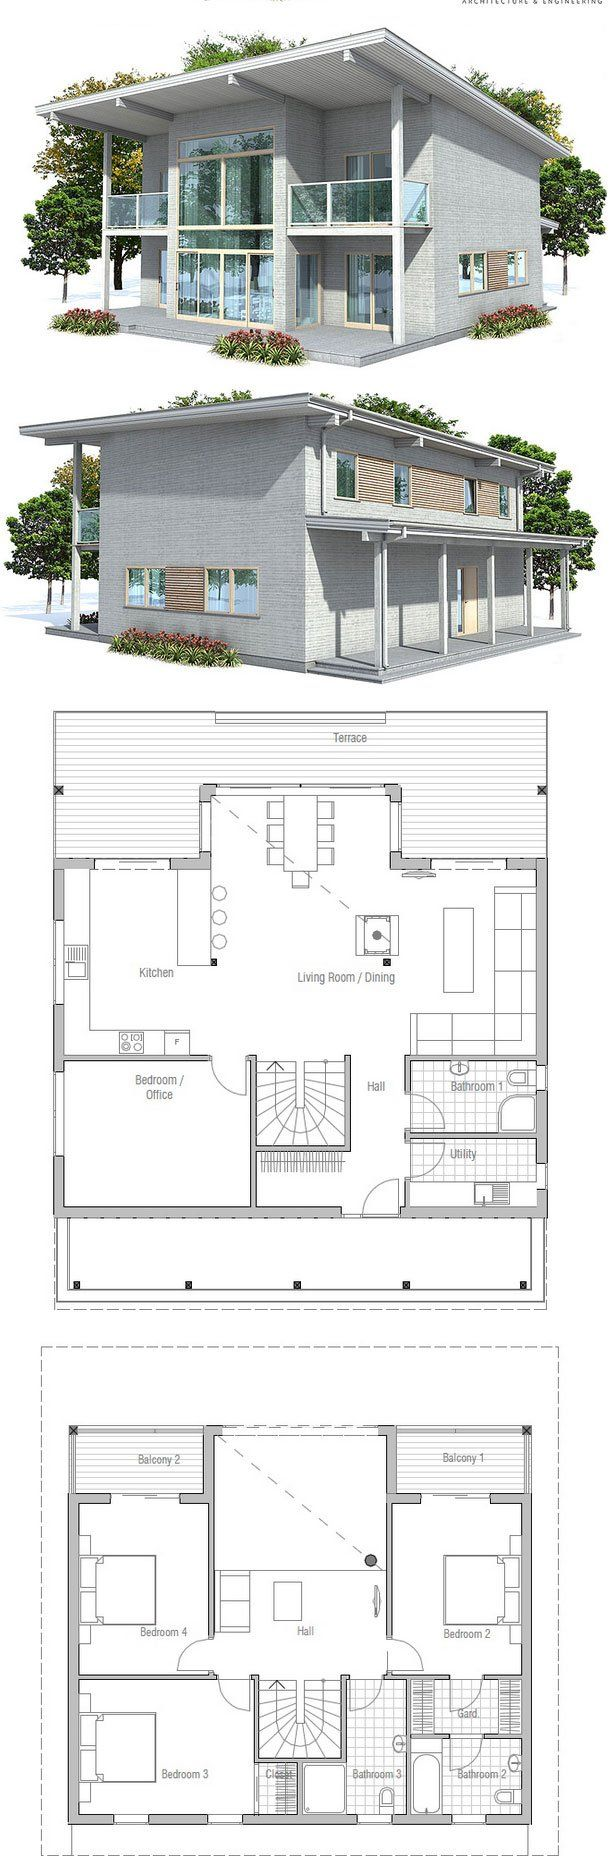 Best 25 modern house floor plans ideas on pinterest Blueprints of houses to build